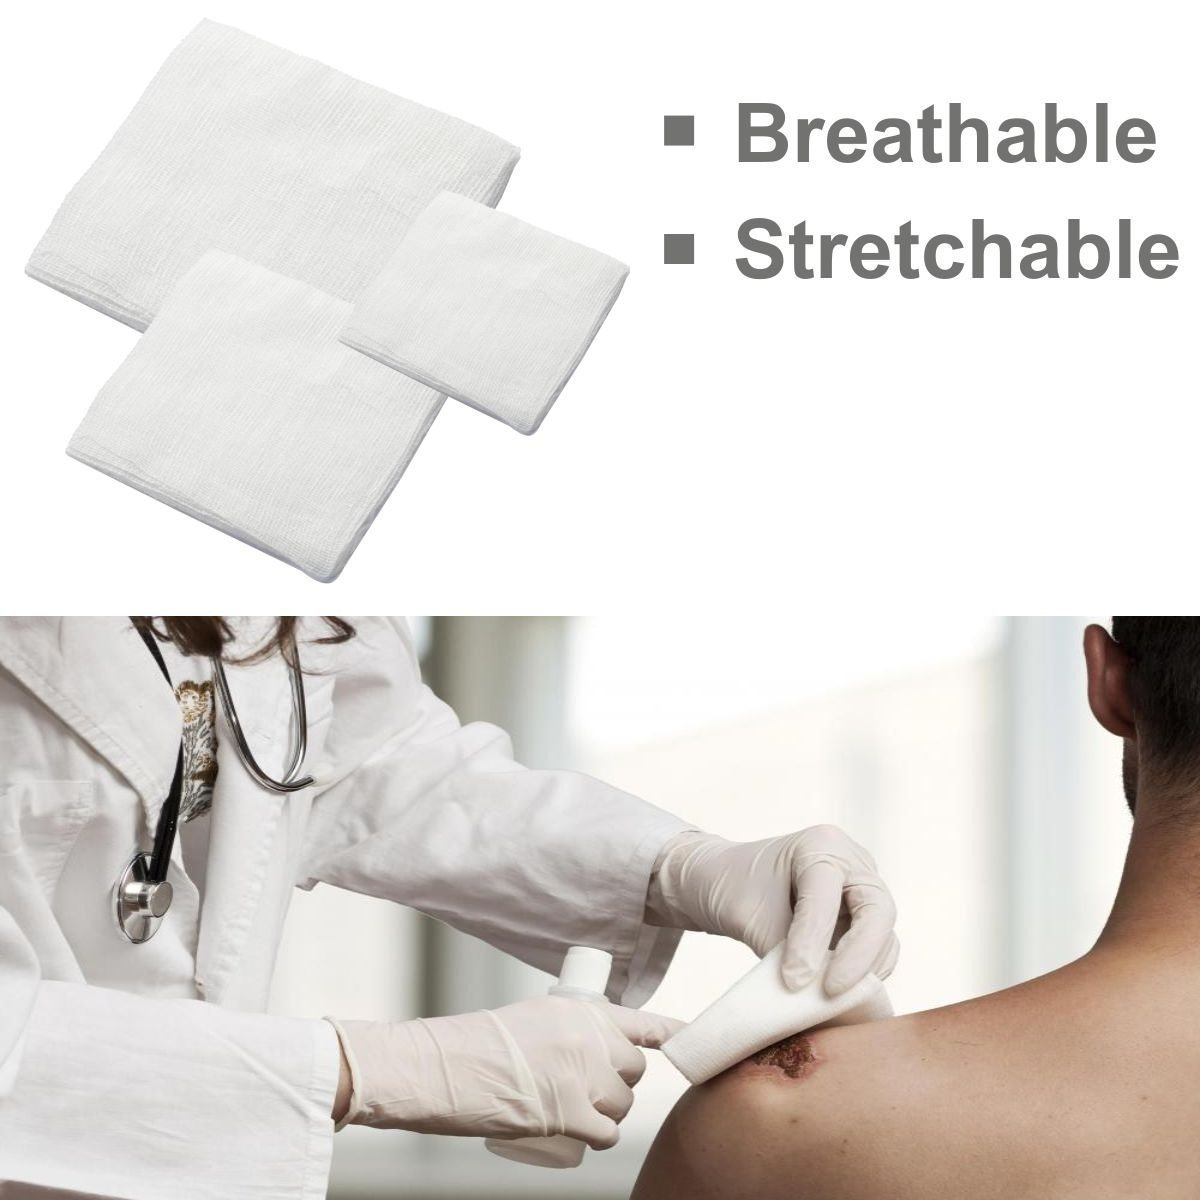 Stretchable Breathable Emergency Kits First Aid Supplies Wound Gauze Pad 100% Safe Medical Dressing pads Shooting Star Essentials